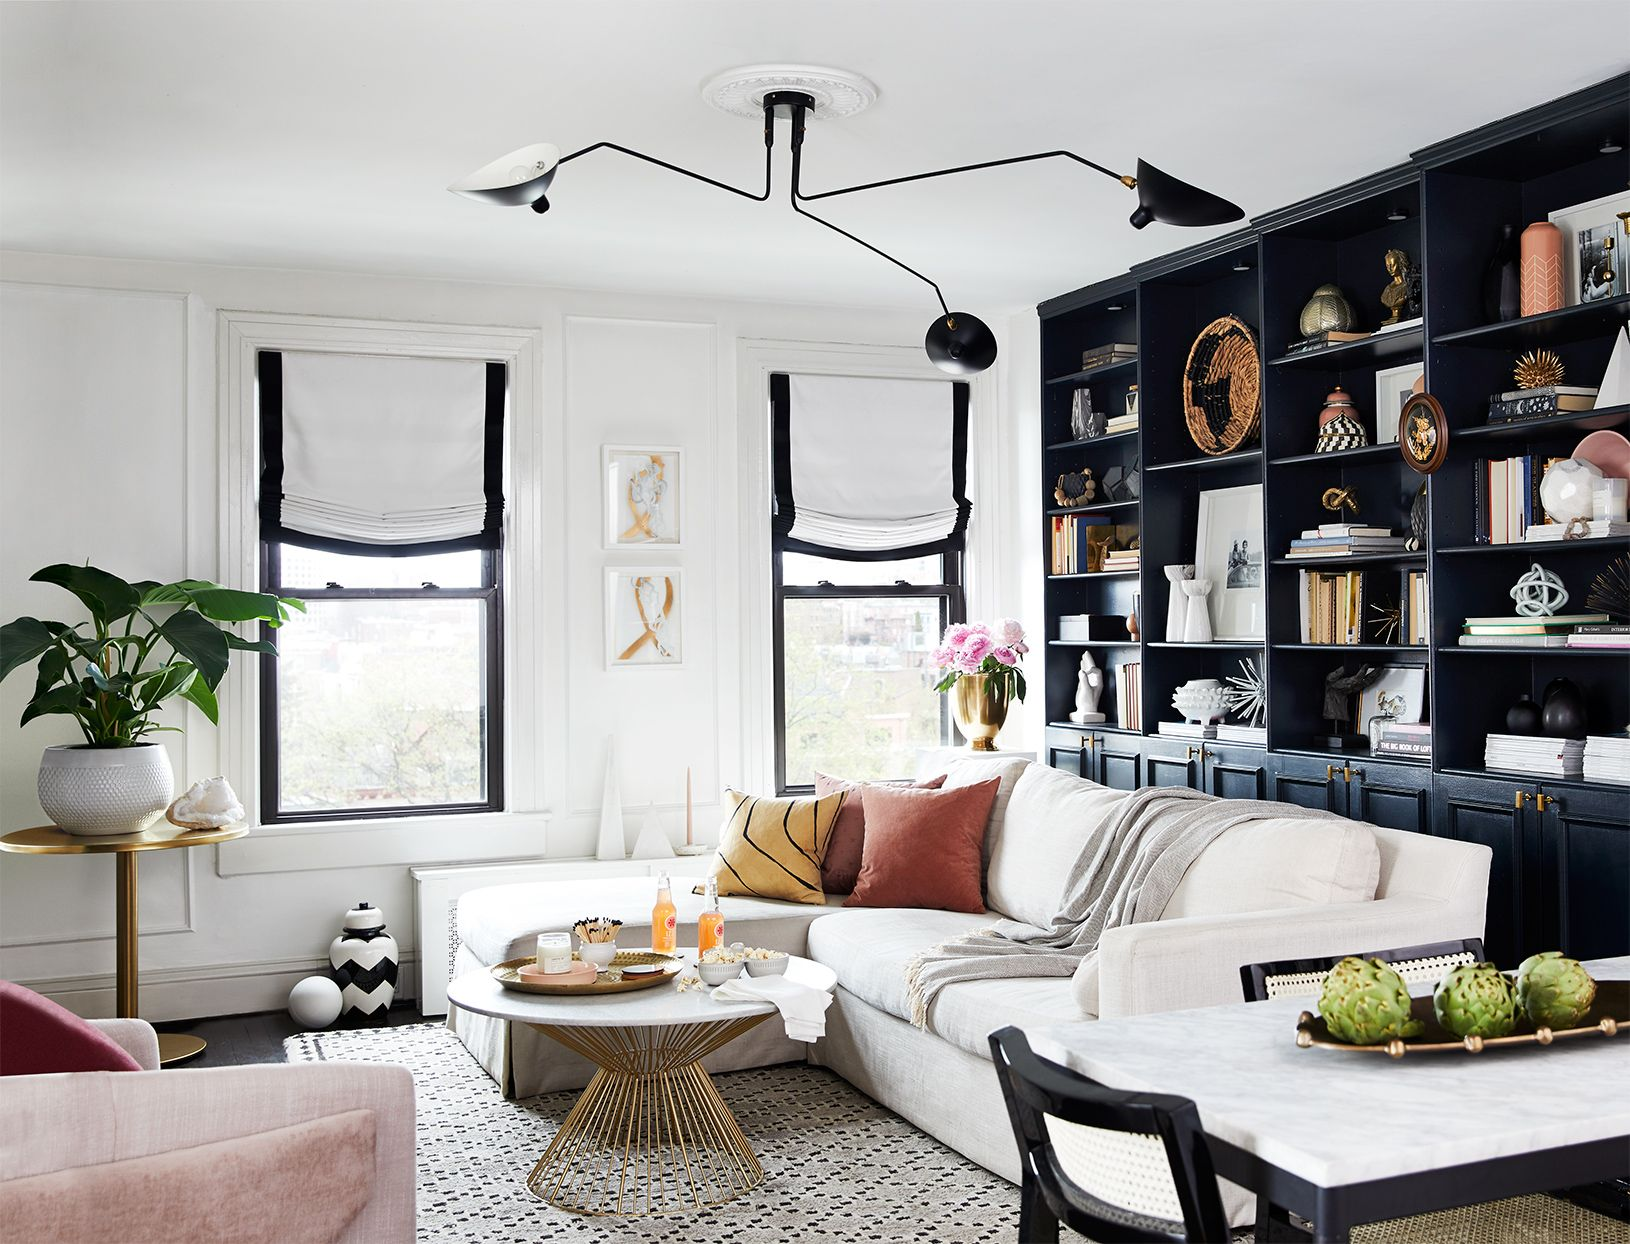 14 Small Space Lessons From A 750 Square Foot Townhome Makeove